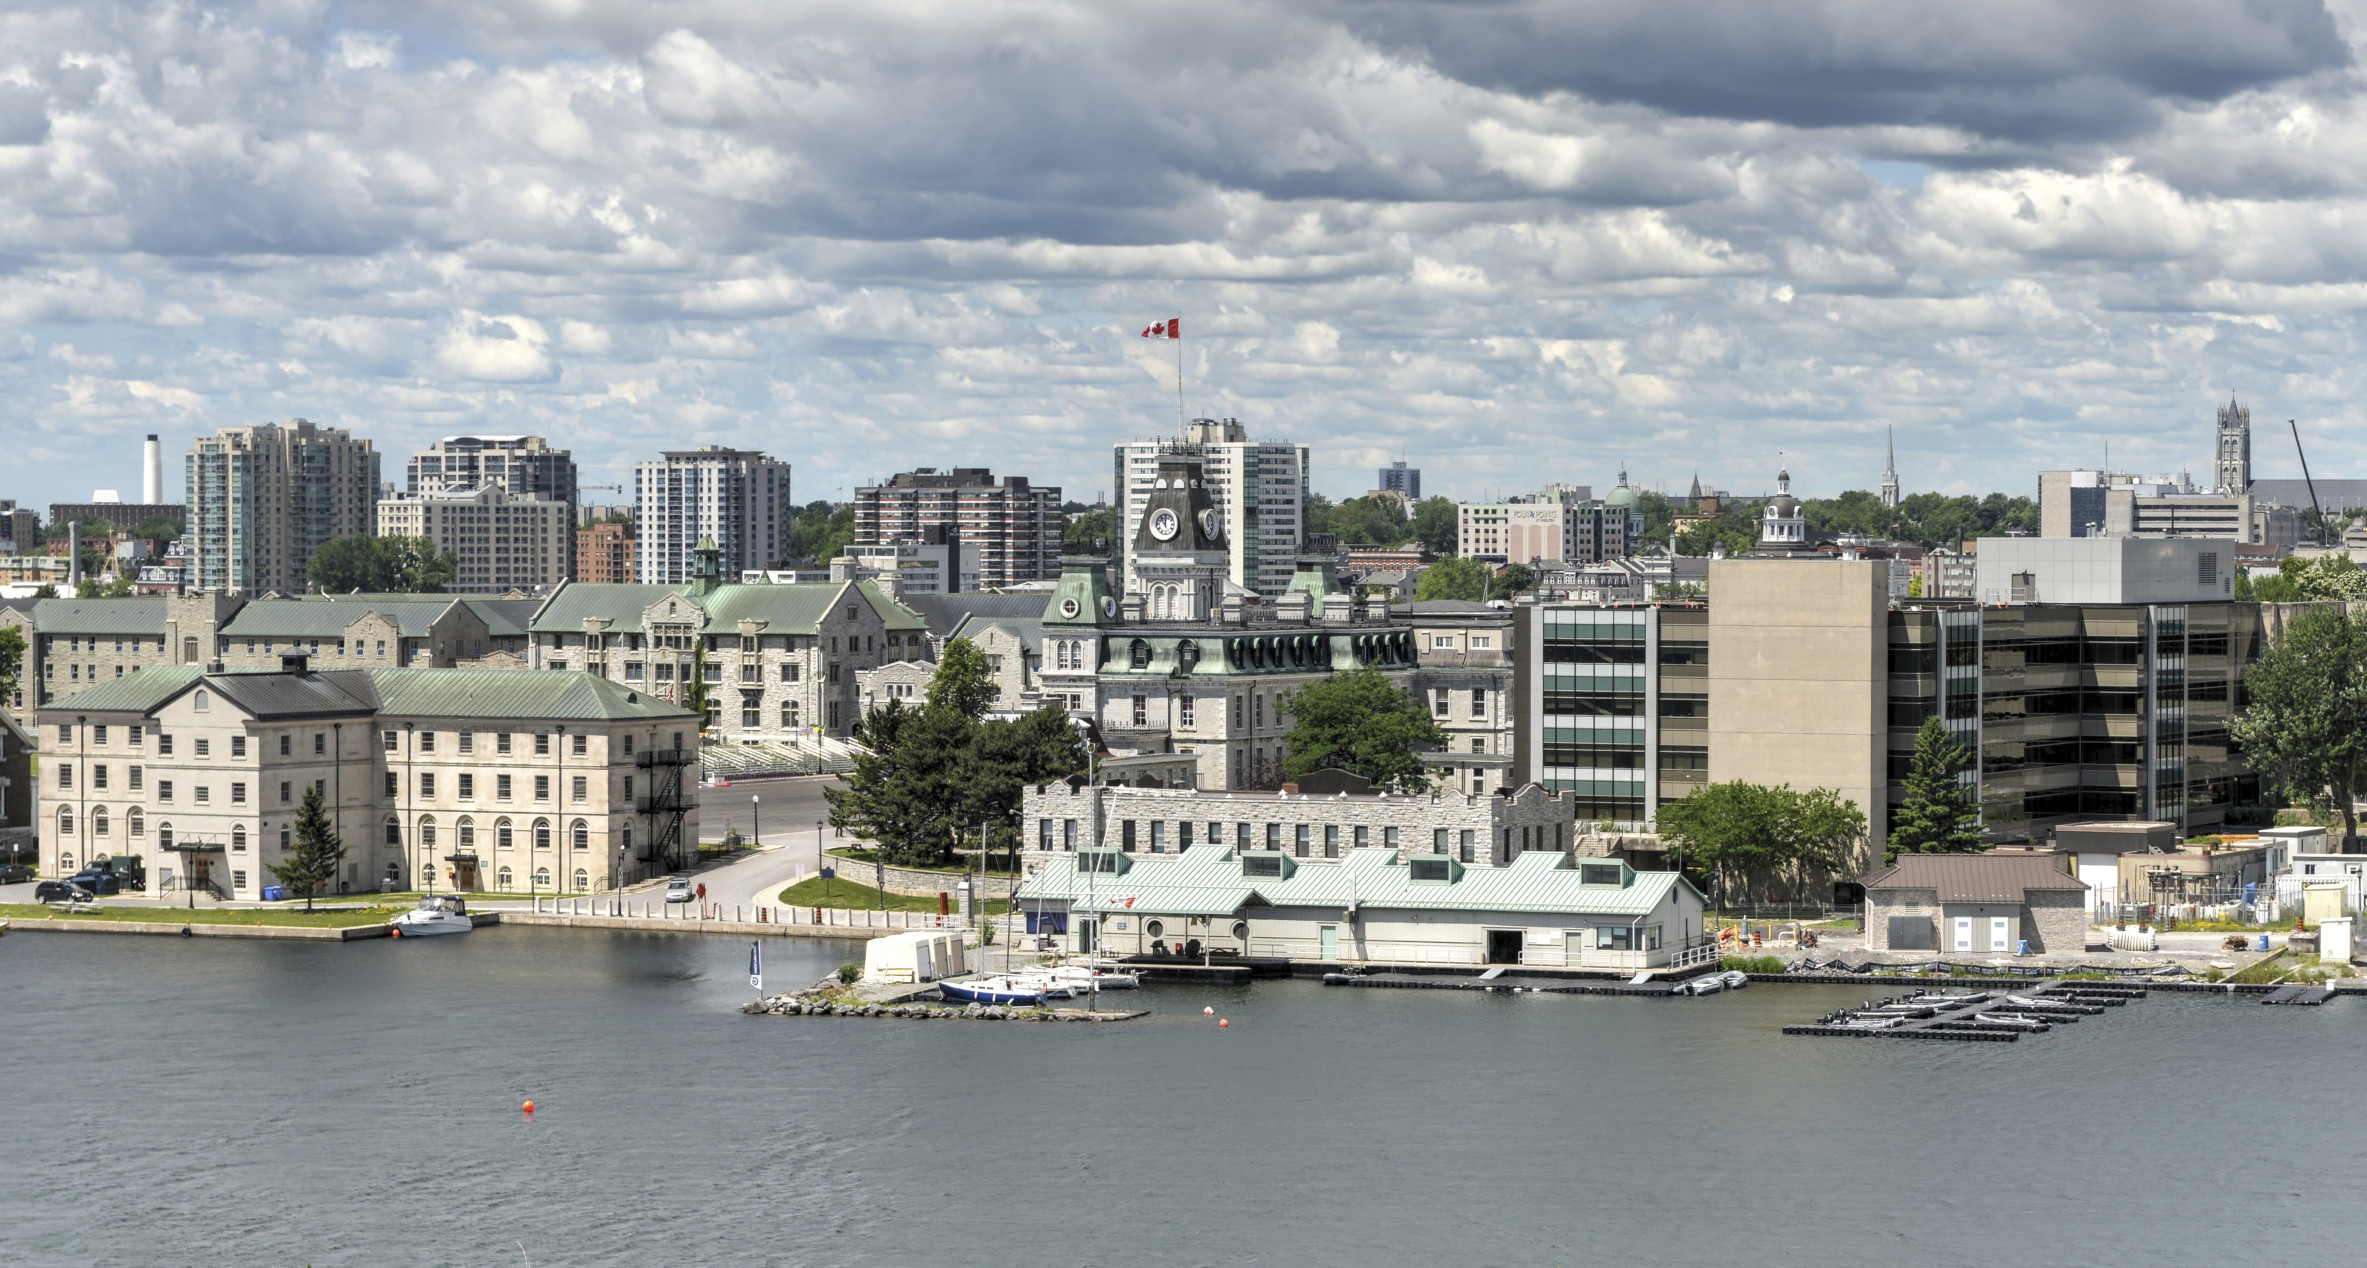 Canada\'s Best City To Find A Job? Guelph, Ontario, According To BMO